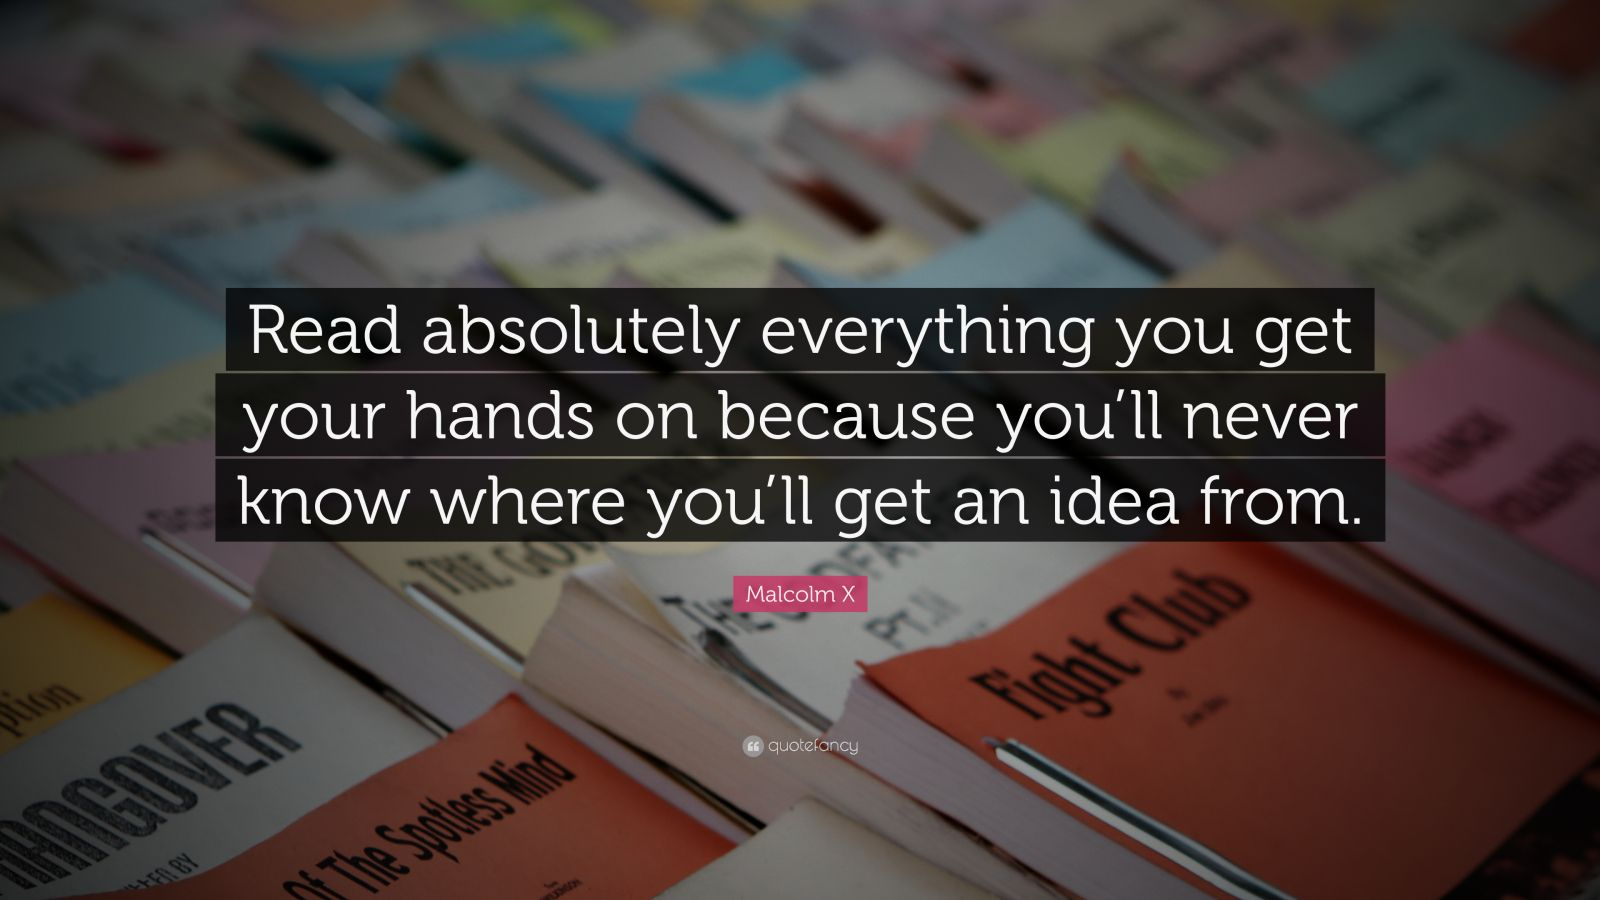 """Quotes About Ideas: """"Read absolutely everything you get your hands on because you'll never know where you'll get an idea from."""" — Malcolm X"""